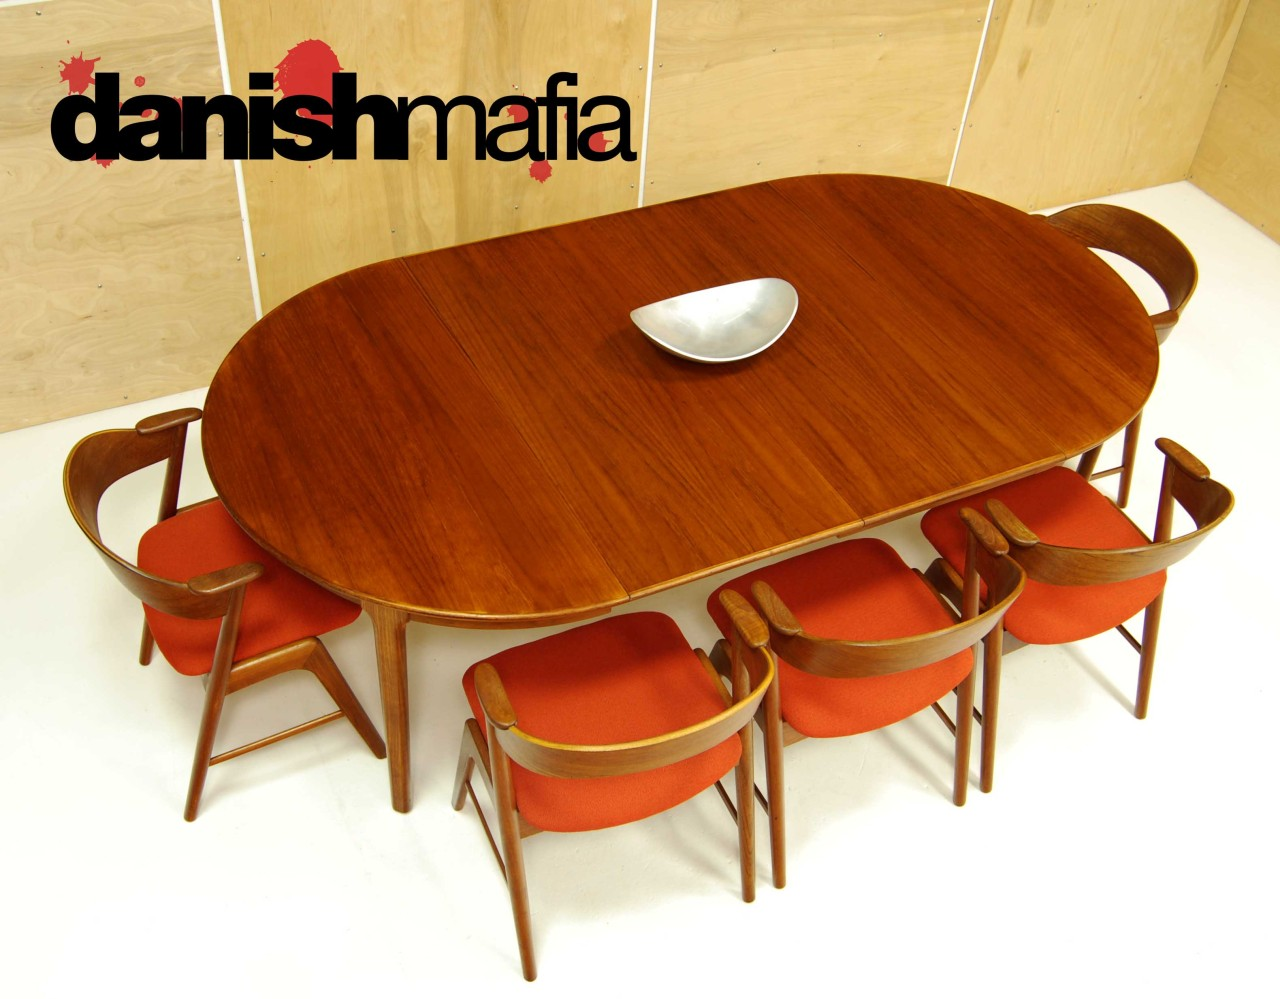 Modern oval dining room table -  Mid Century Danish Modern Oval Henning Kj Rnulf Teak Table 1